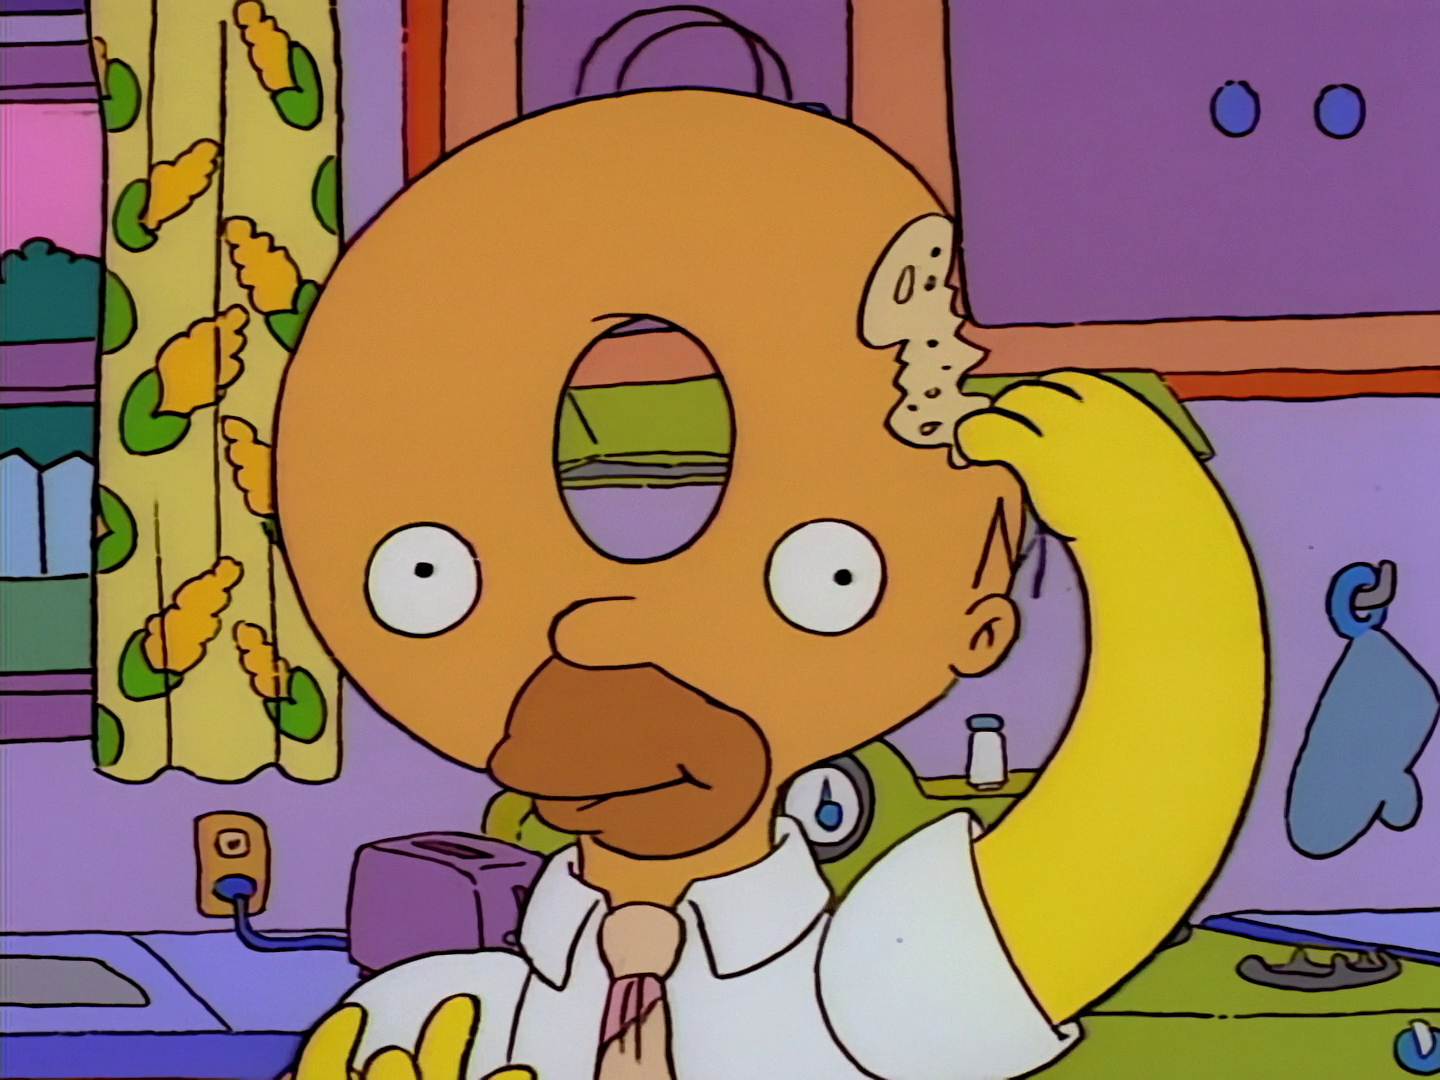 http://images.wikia.com/simpsons/images/f/f1/Donut_Homer.jpg